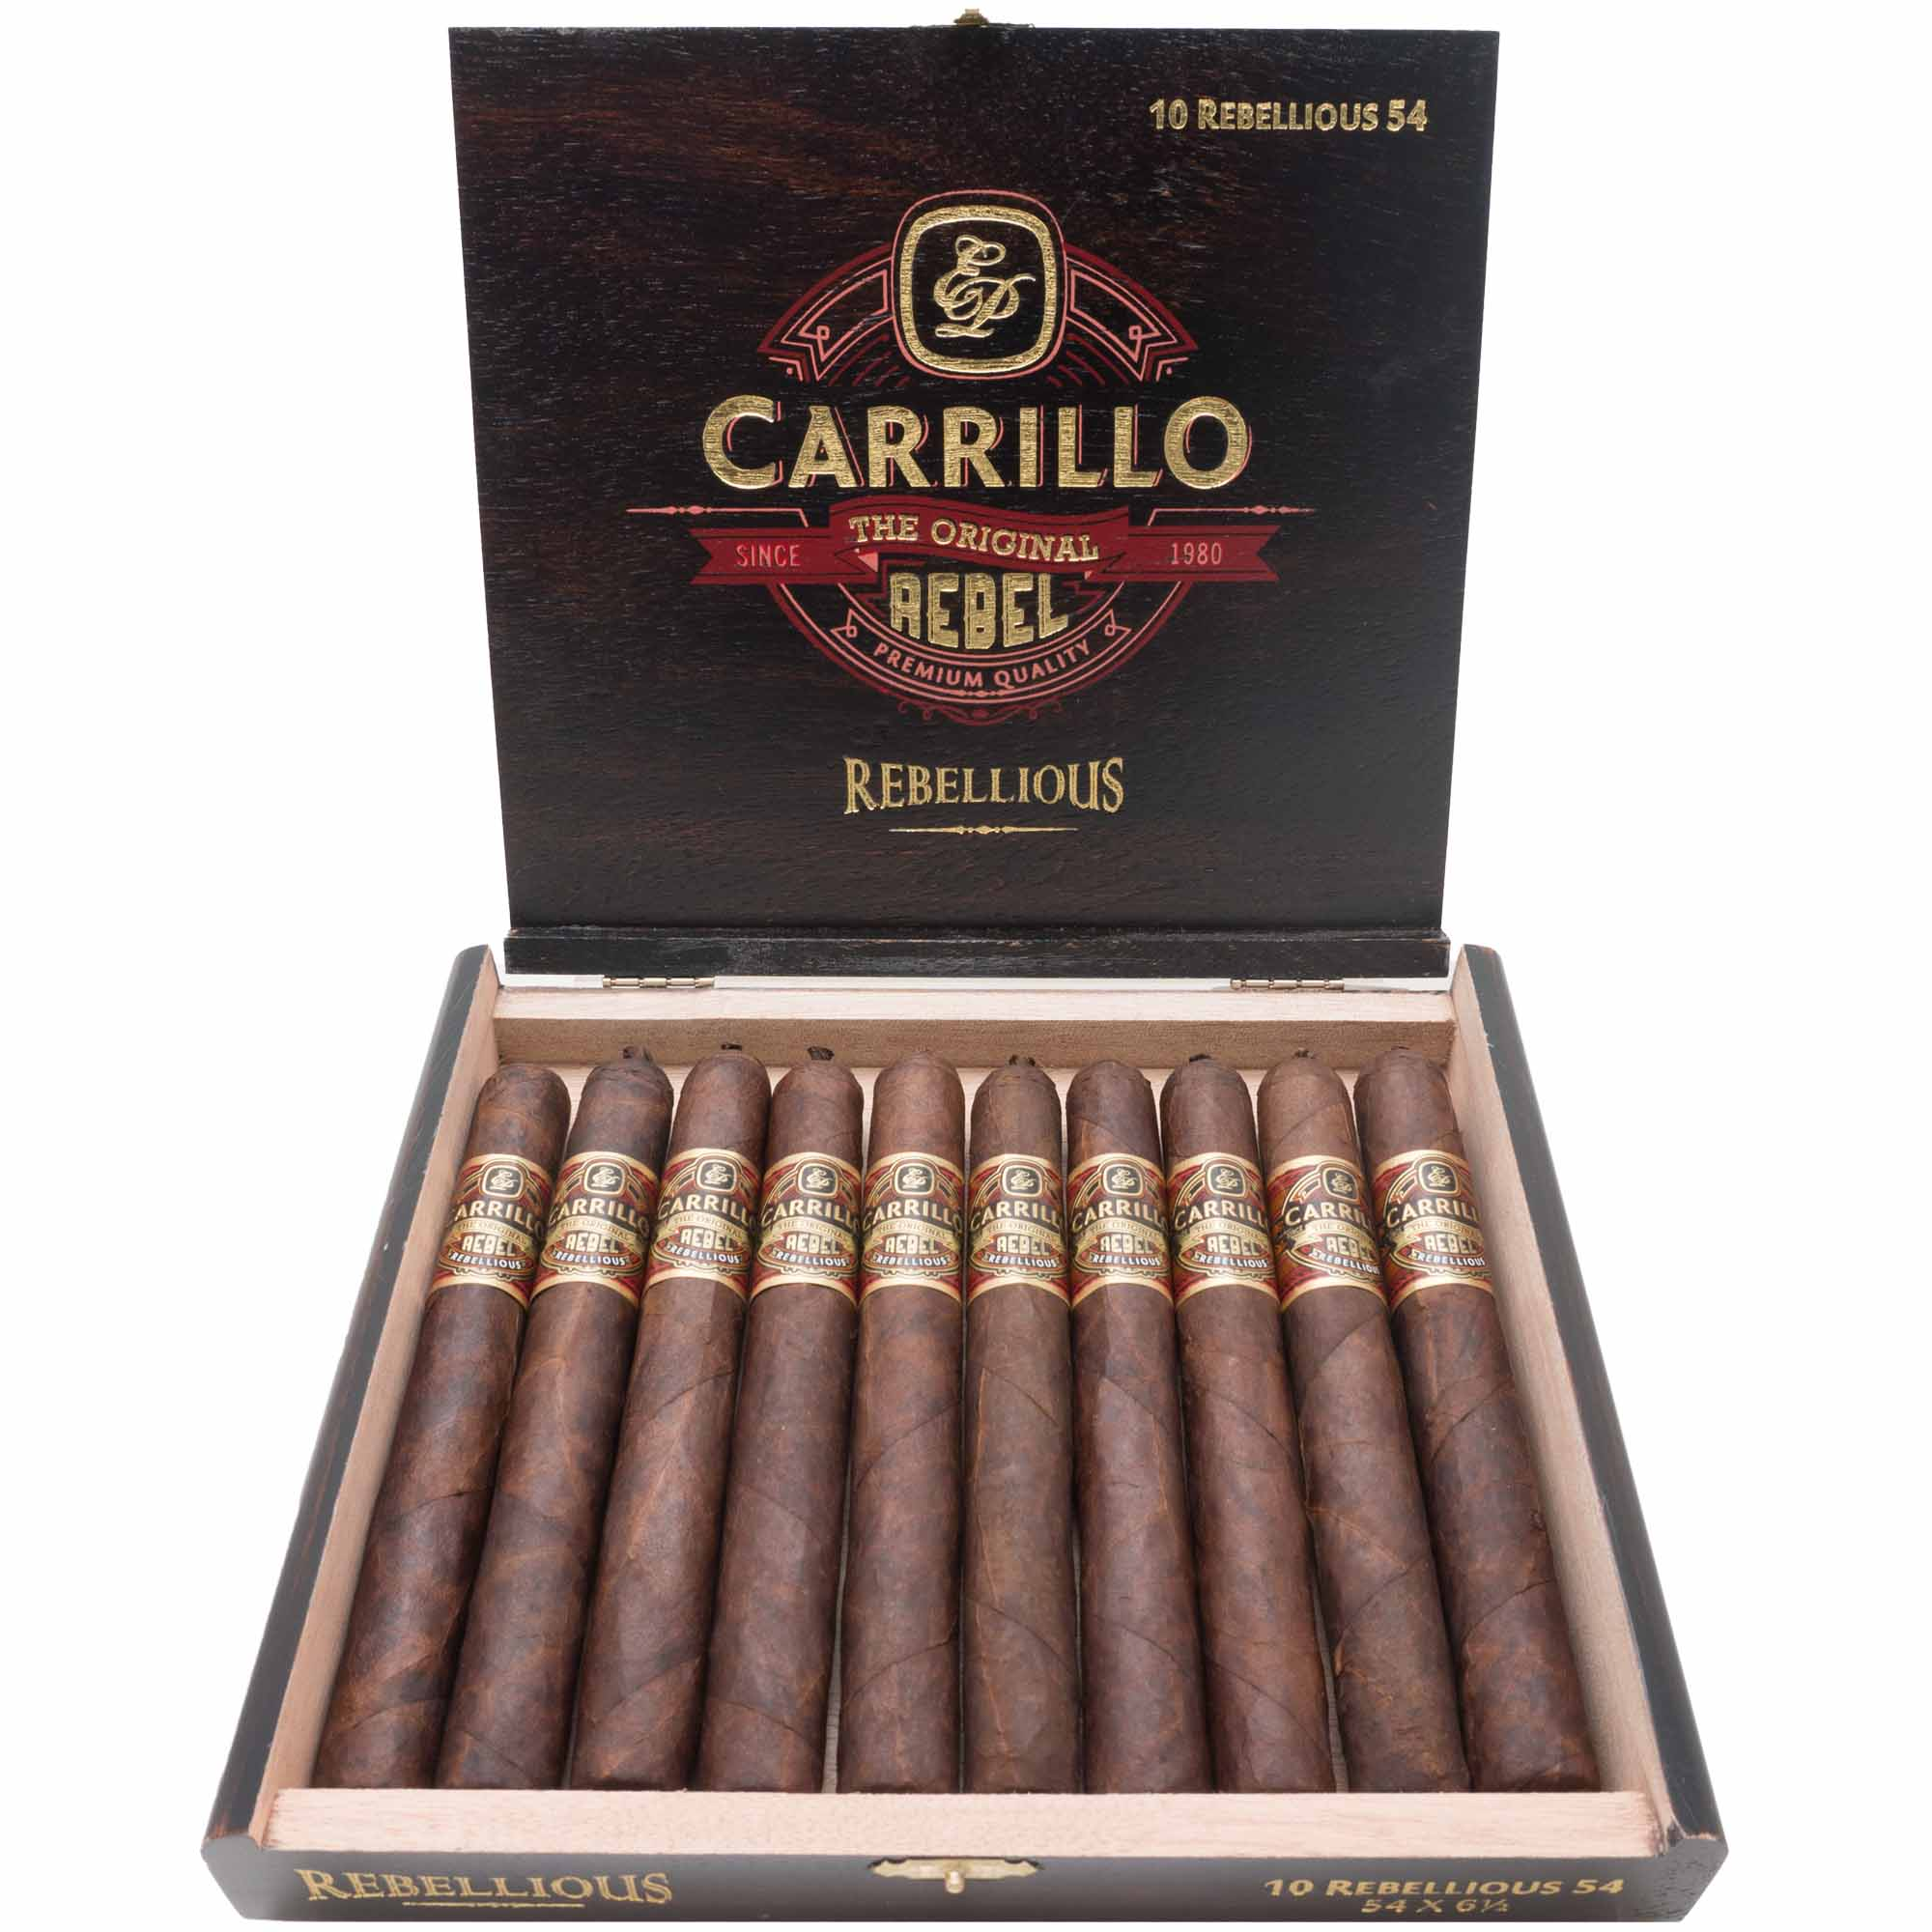 E.P. Carrillo Rebel Rebellious 54 - 10er Kistchen